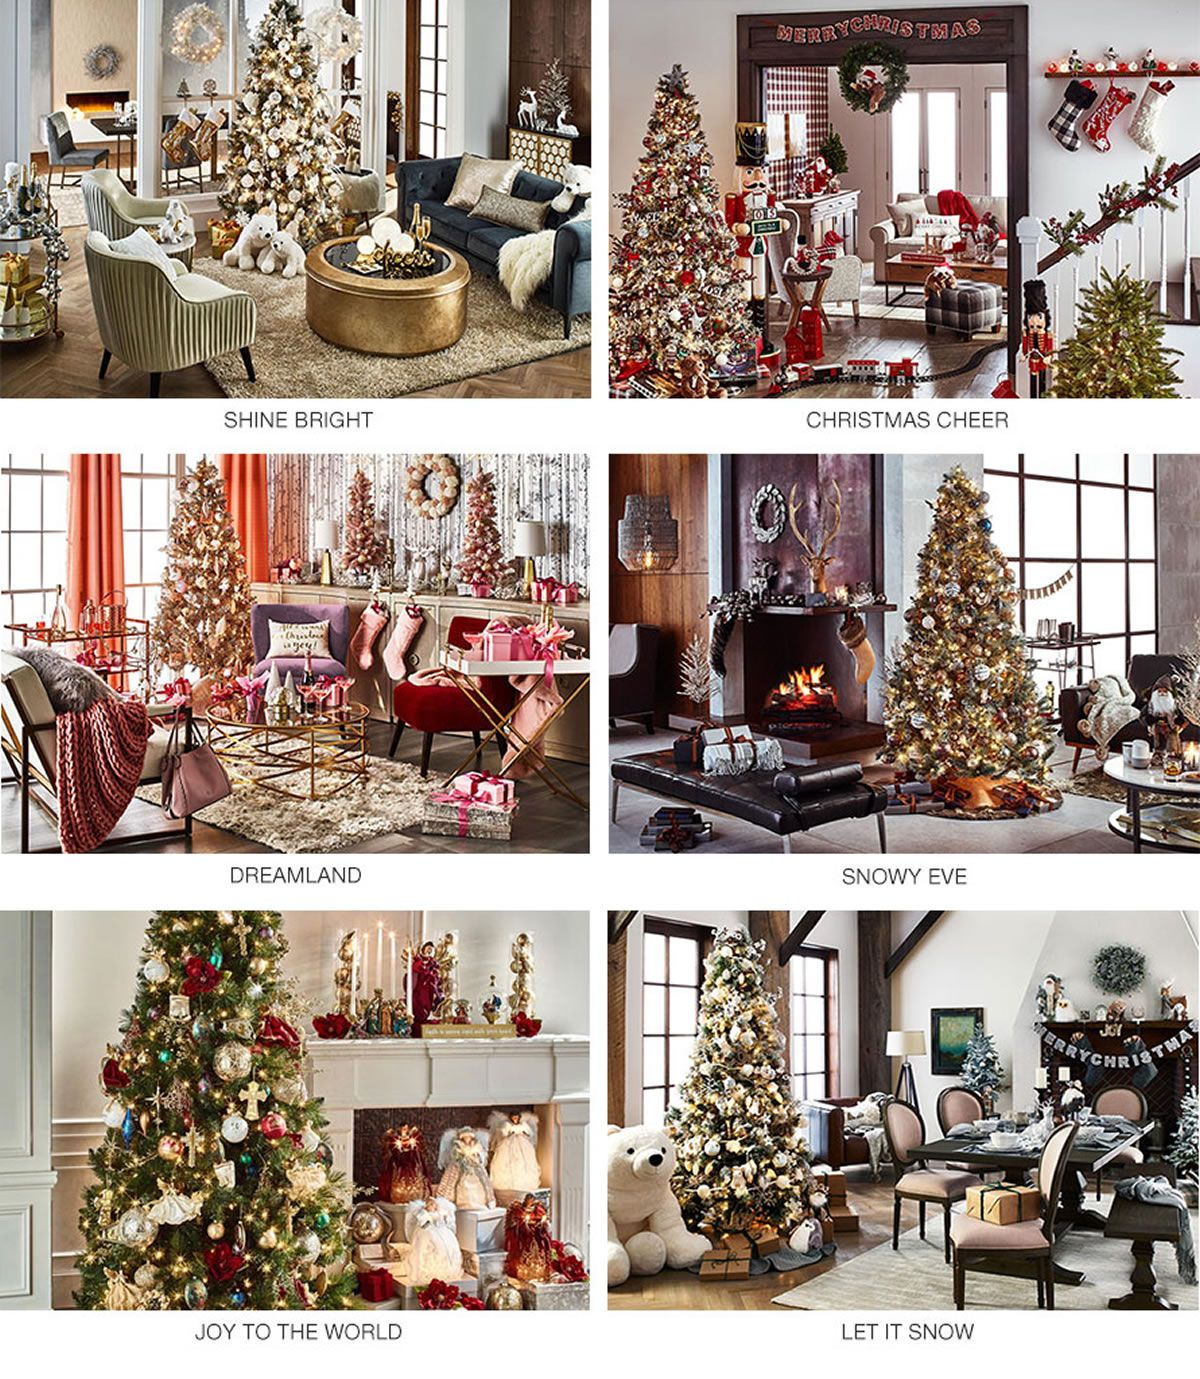 shine bright christmas cheer dreamland snowy eve joy to the world - Buy Christmas Decorations